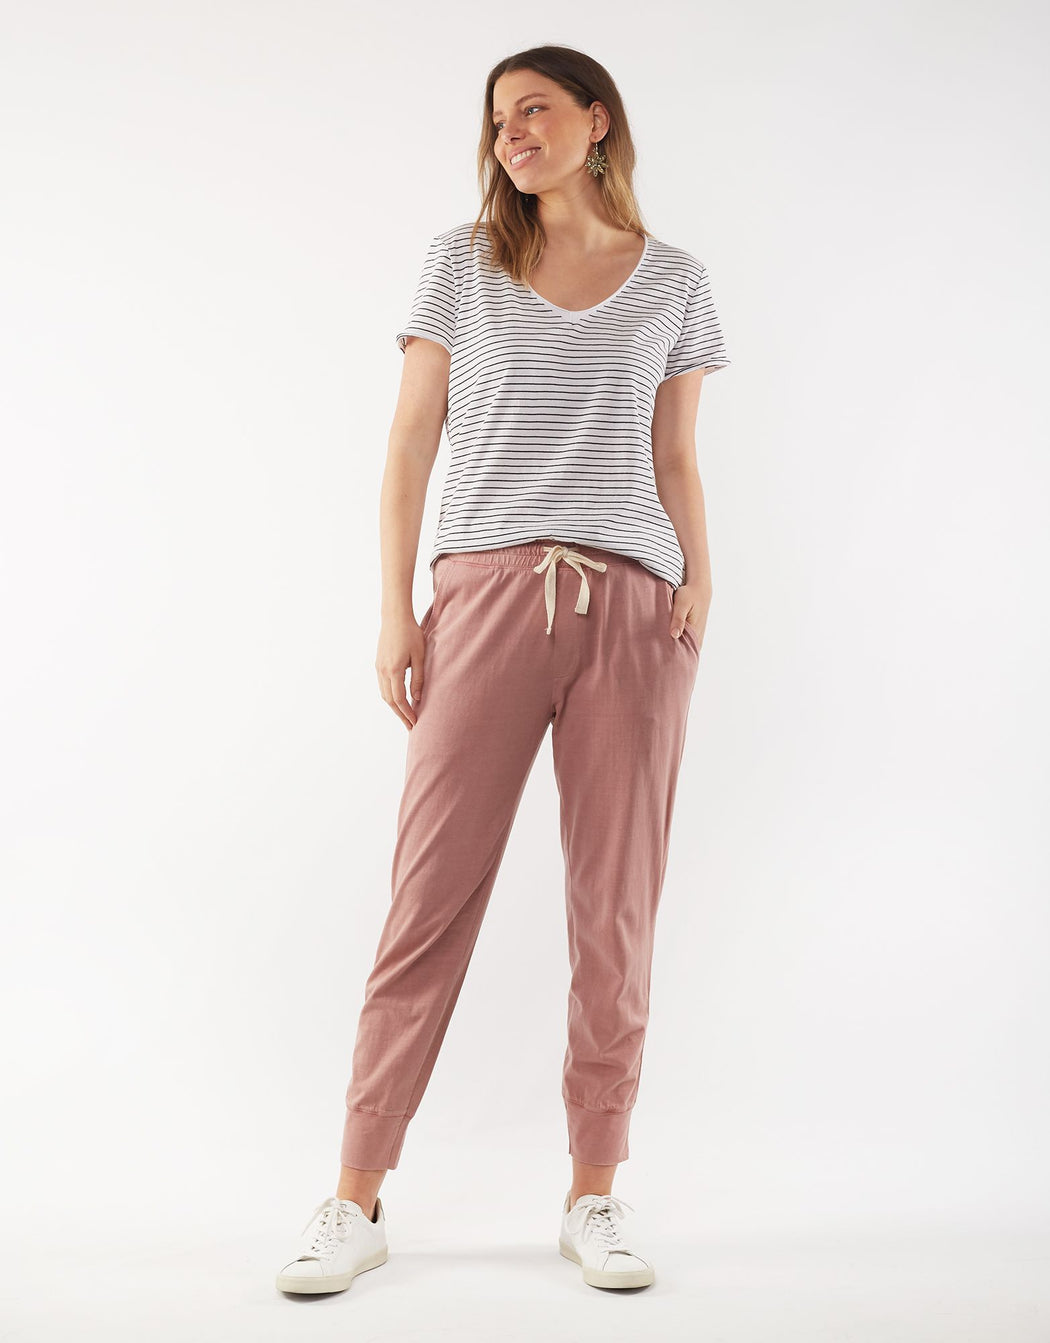 Elm Wash Out Lounge Pant - Rose | Shop Elm at Wallace & Gibb